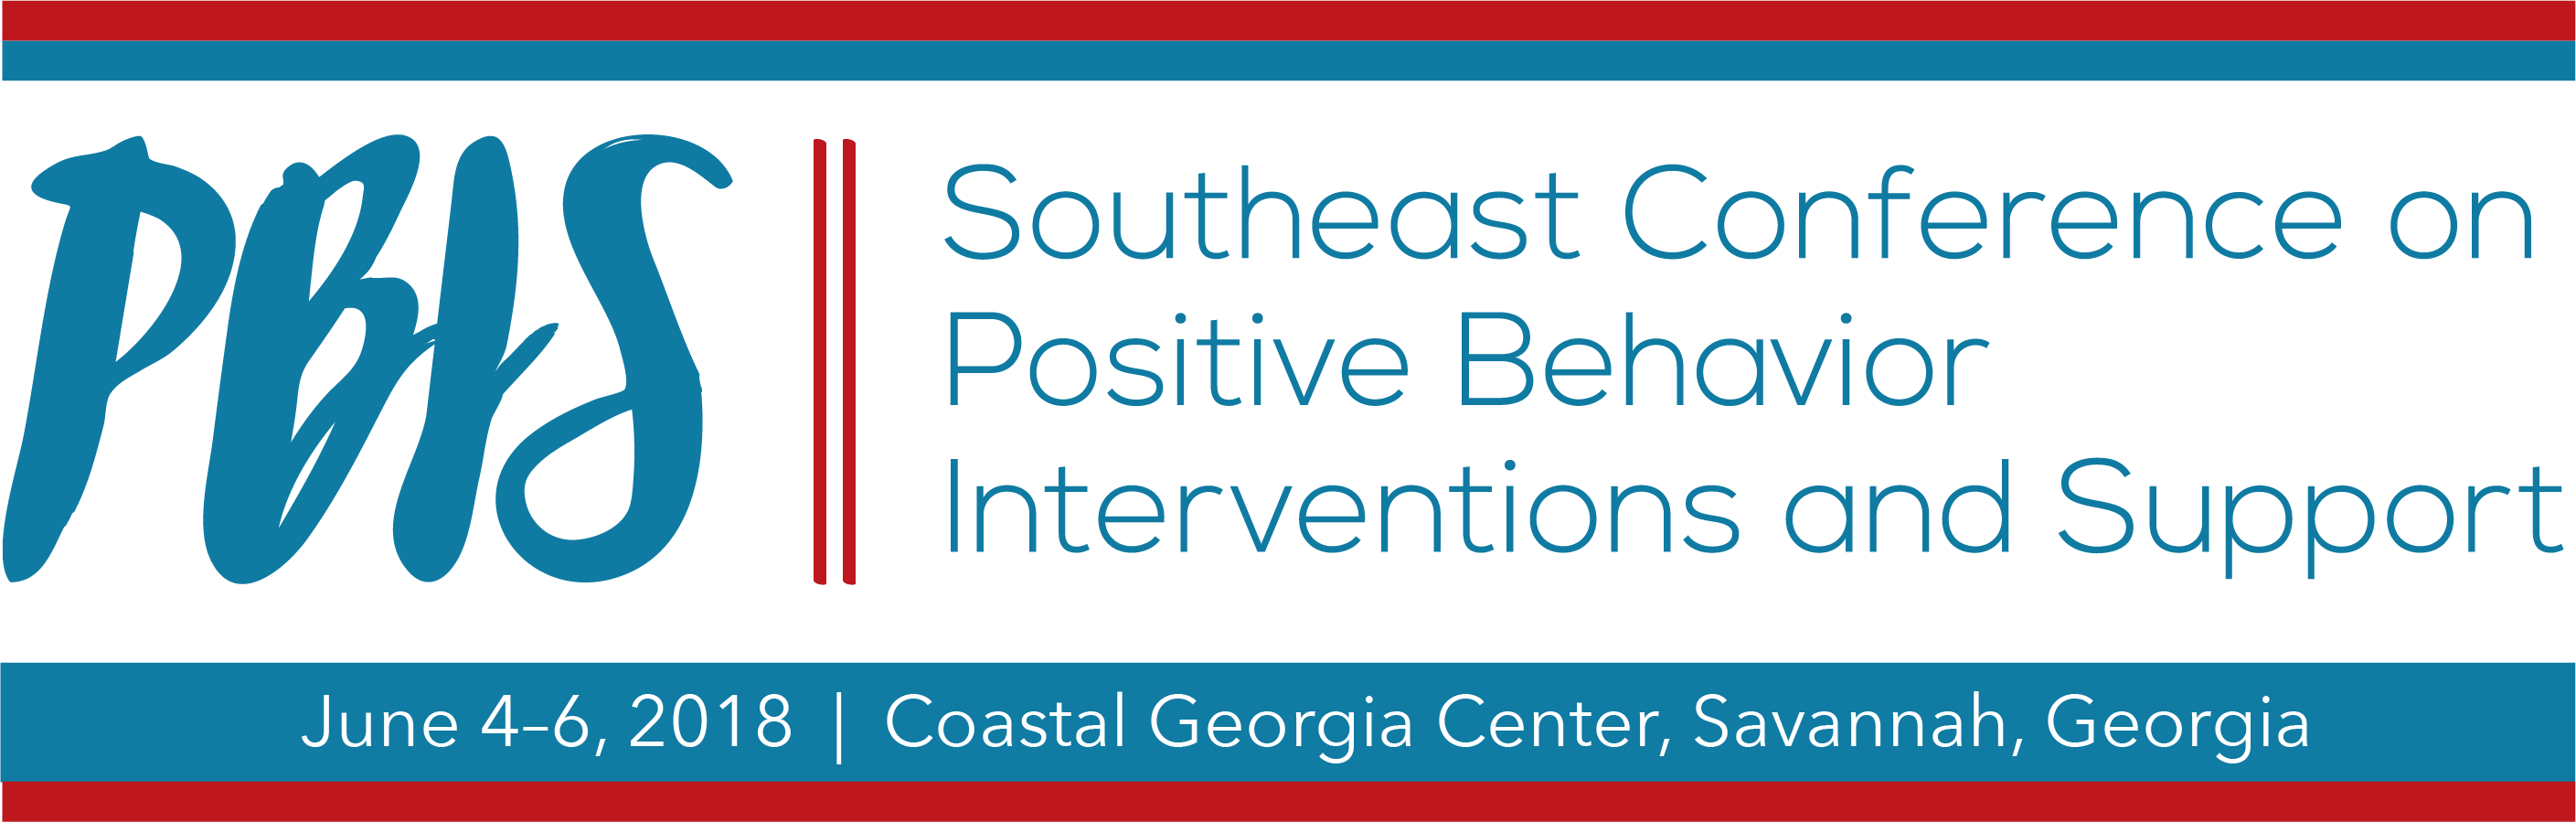 Southeast Conference on Positive Behaviors Intervention and Support (PBIS)